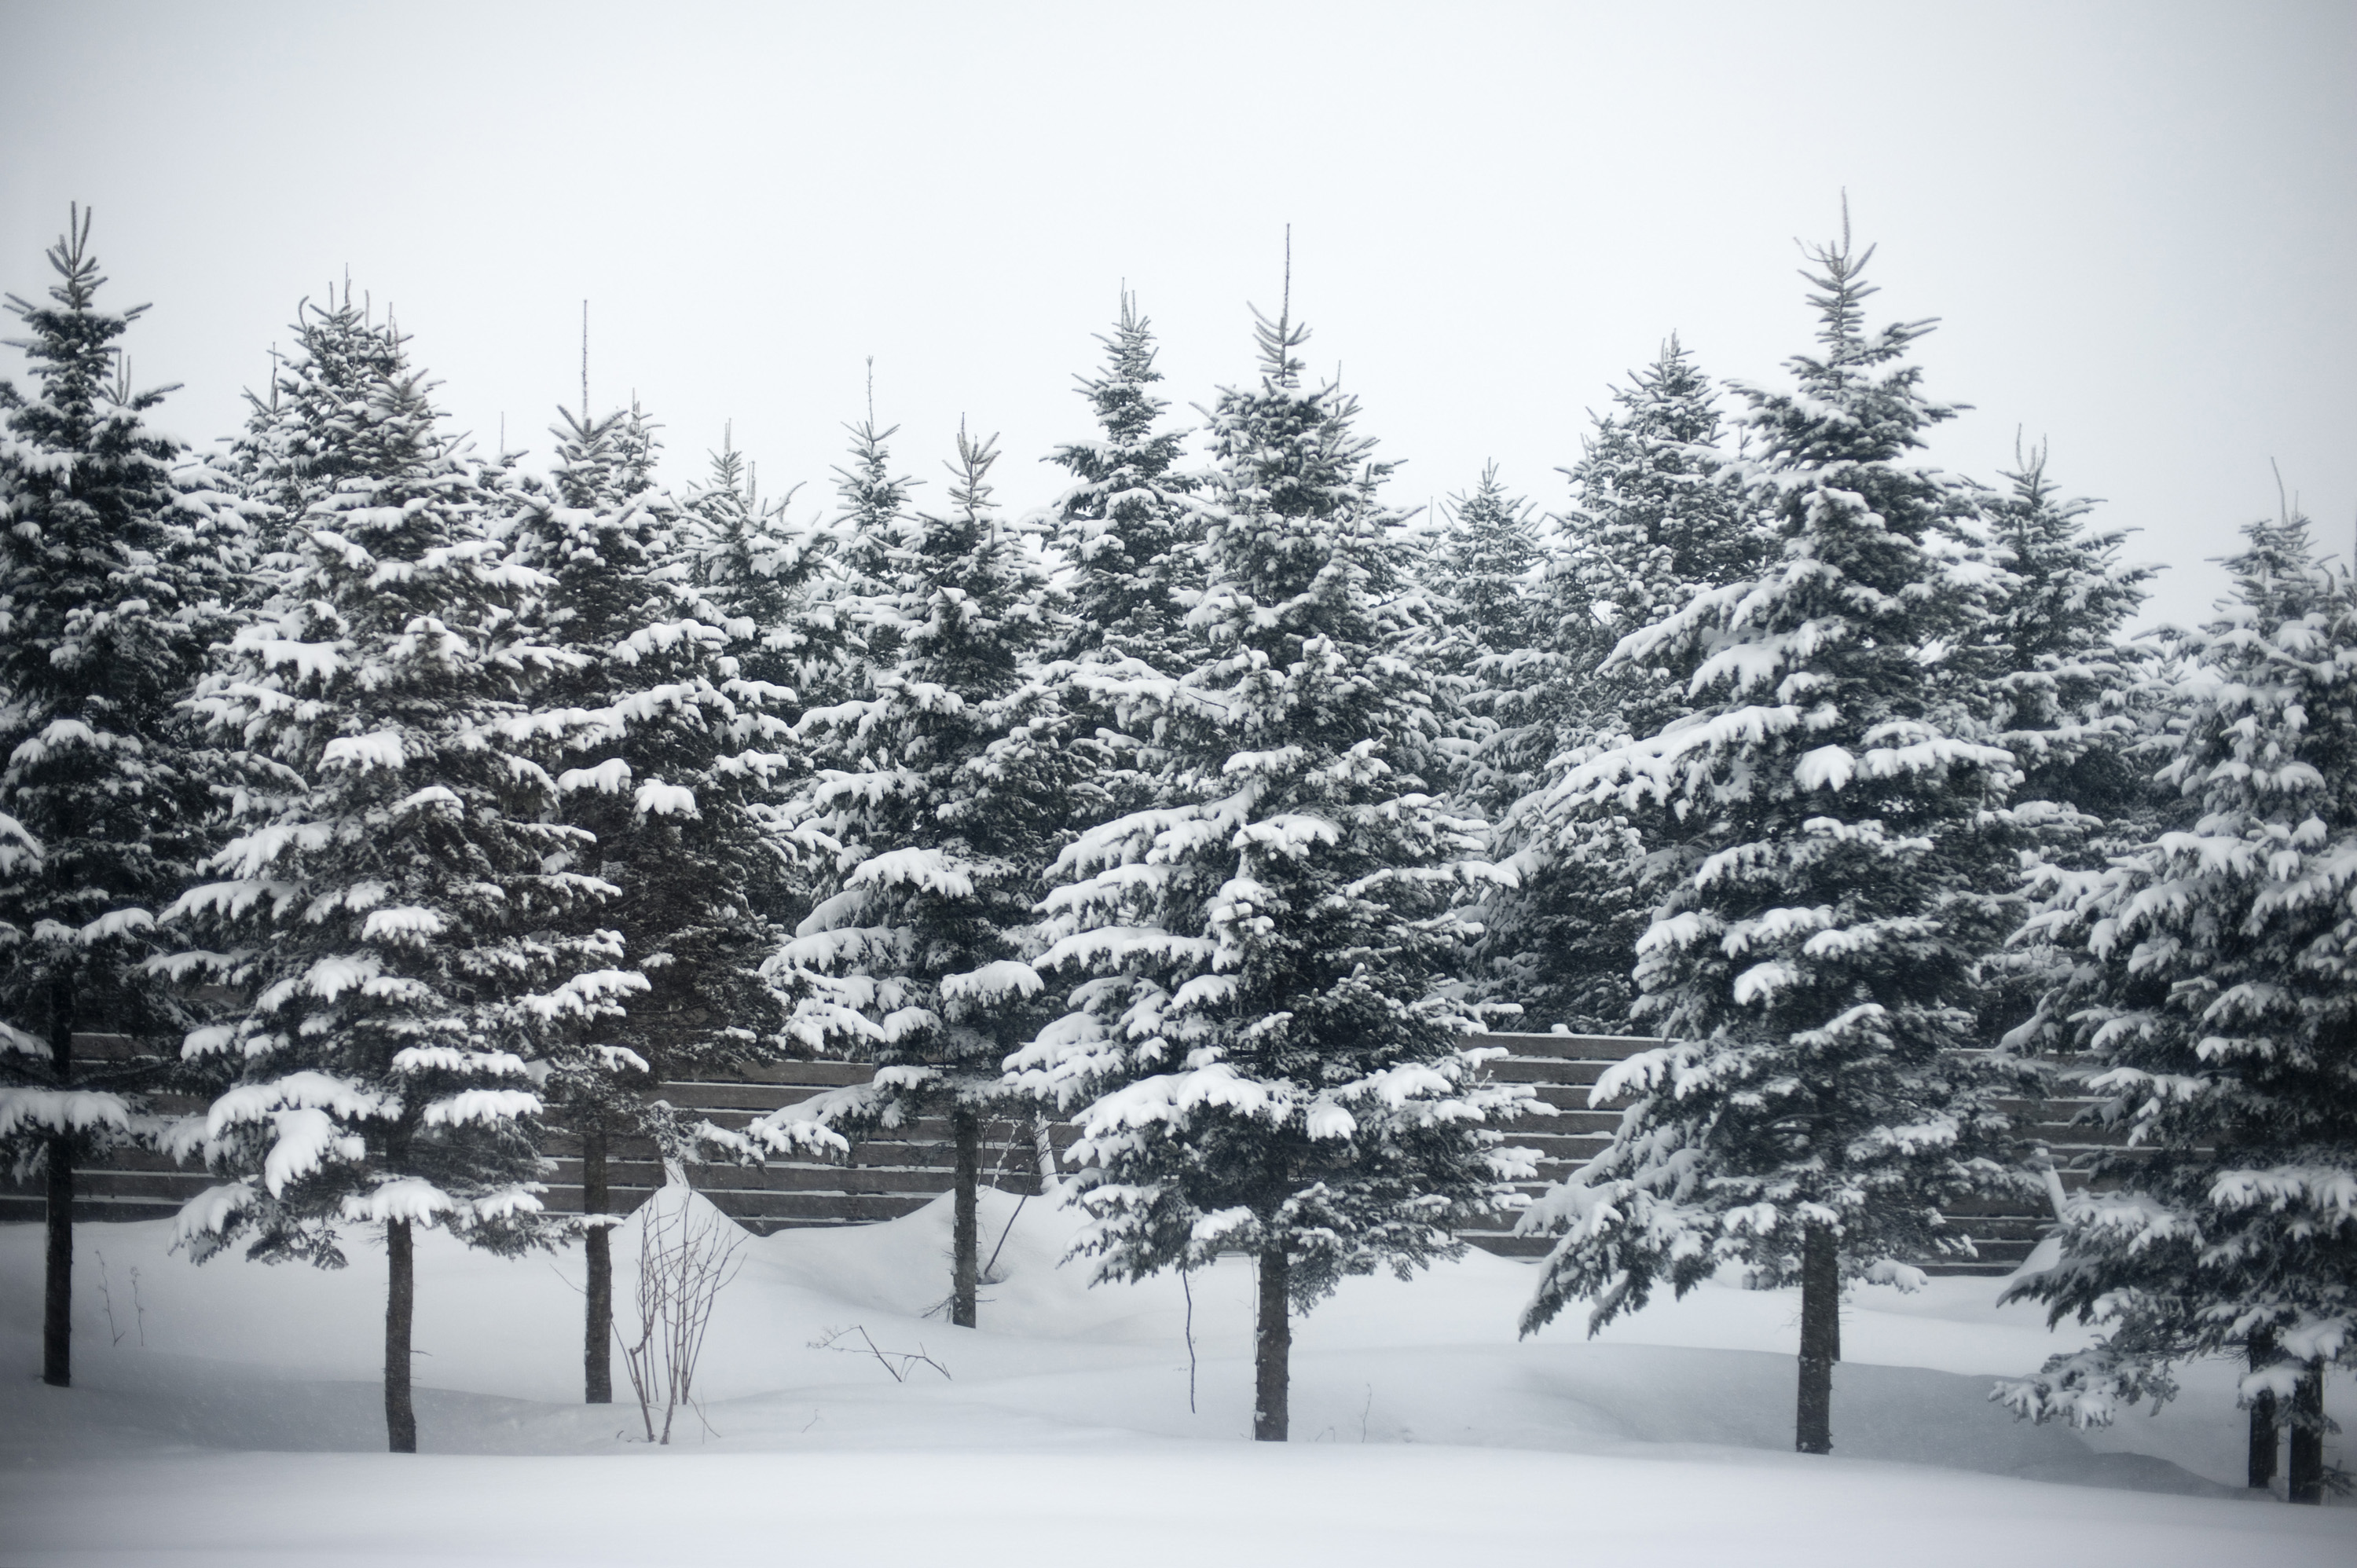 Video Game Foliage — Evergreens covered in snow. These trees use